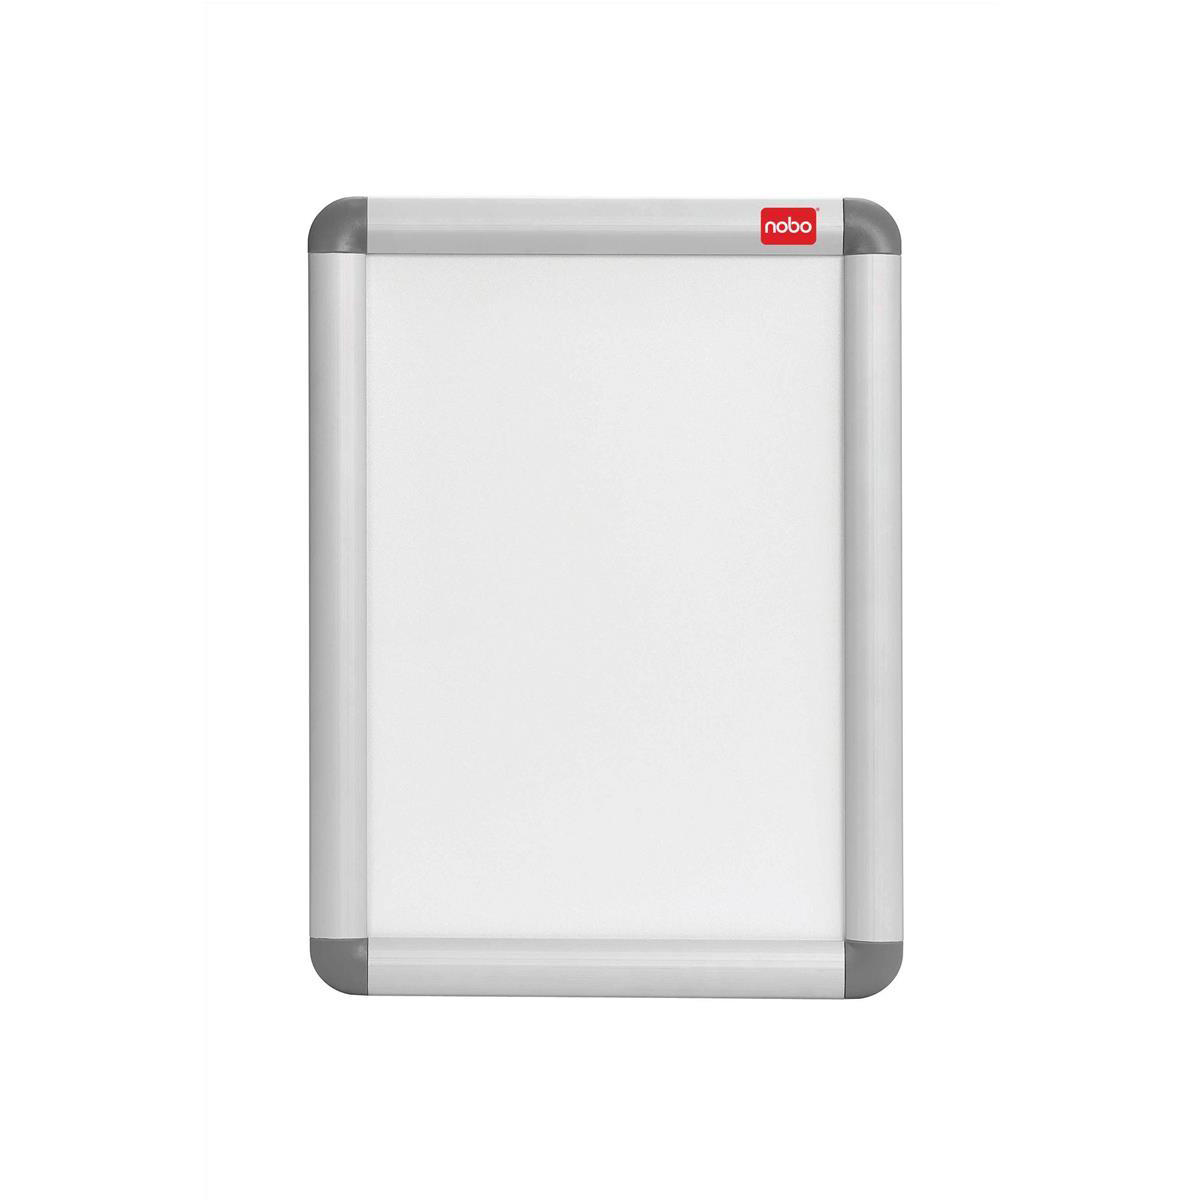 Nobo Snap Frame Moulded Aluminium with PVC Front-loading Inc Fixings A3 420x297mm Ref 1902213